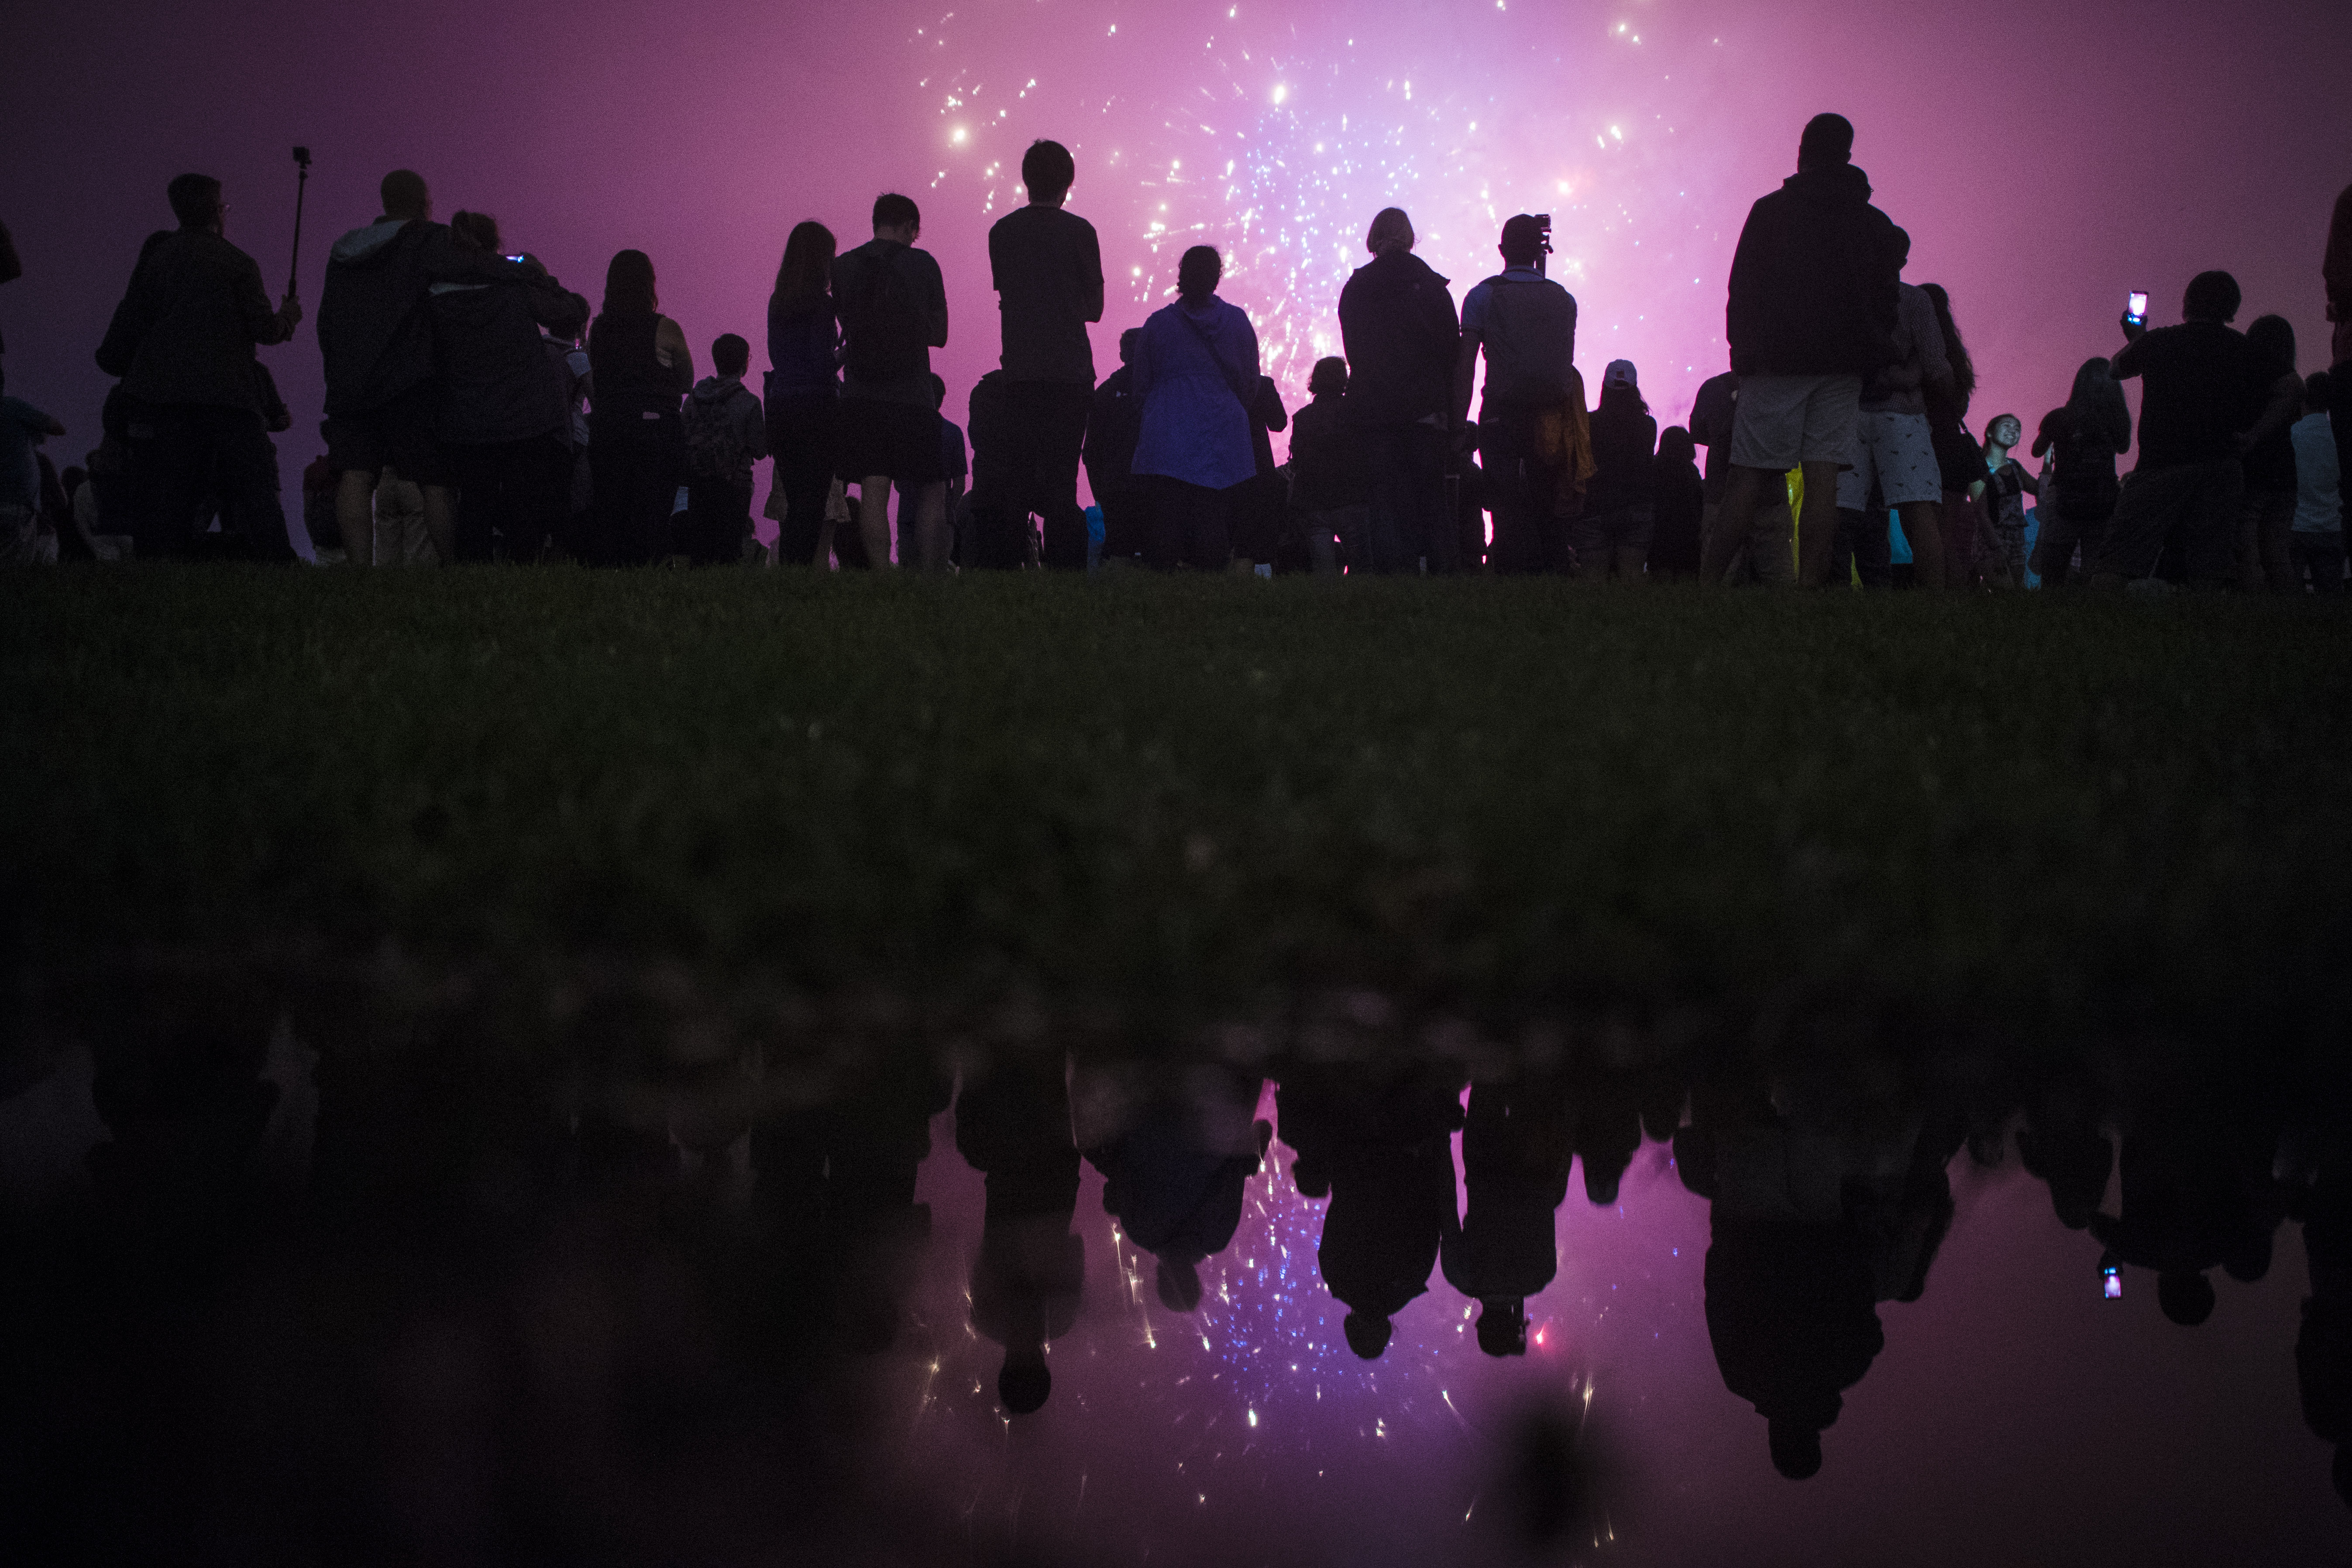 WASHINGTON, DC - JULY 4: Patrons, reflected in a rain puddle, watch near the Washington Monument as the Independence Day fireworks go off on the National Mall in Washington, DC on Monday July 04, 2016. (Photo by Jabin Botsford/The Washington Post via Getty Images)